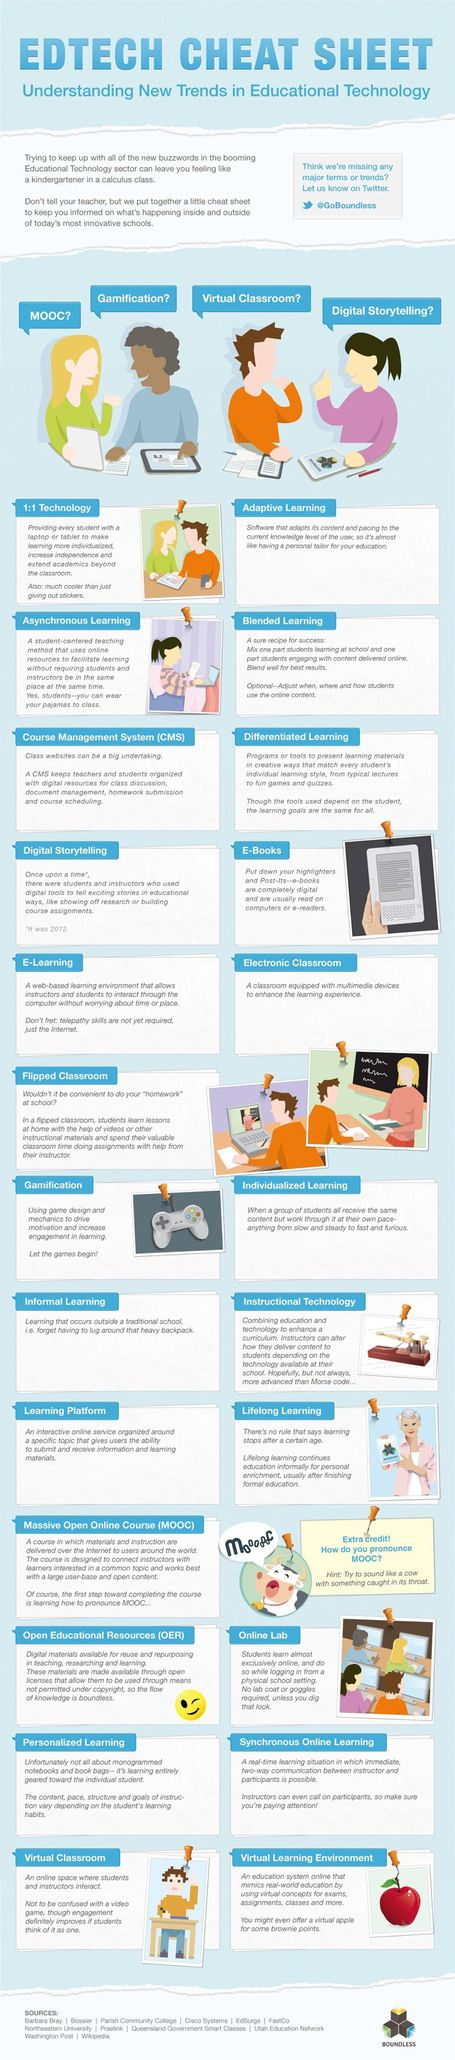 24 technology education terms you should know as you get ready to start training in 2013. #edtech